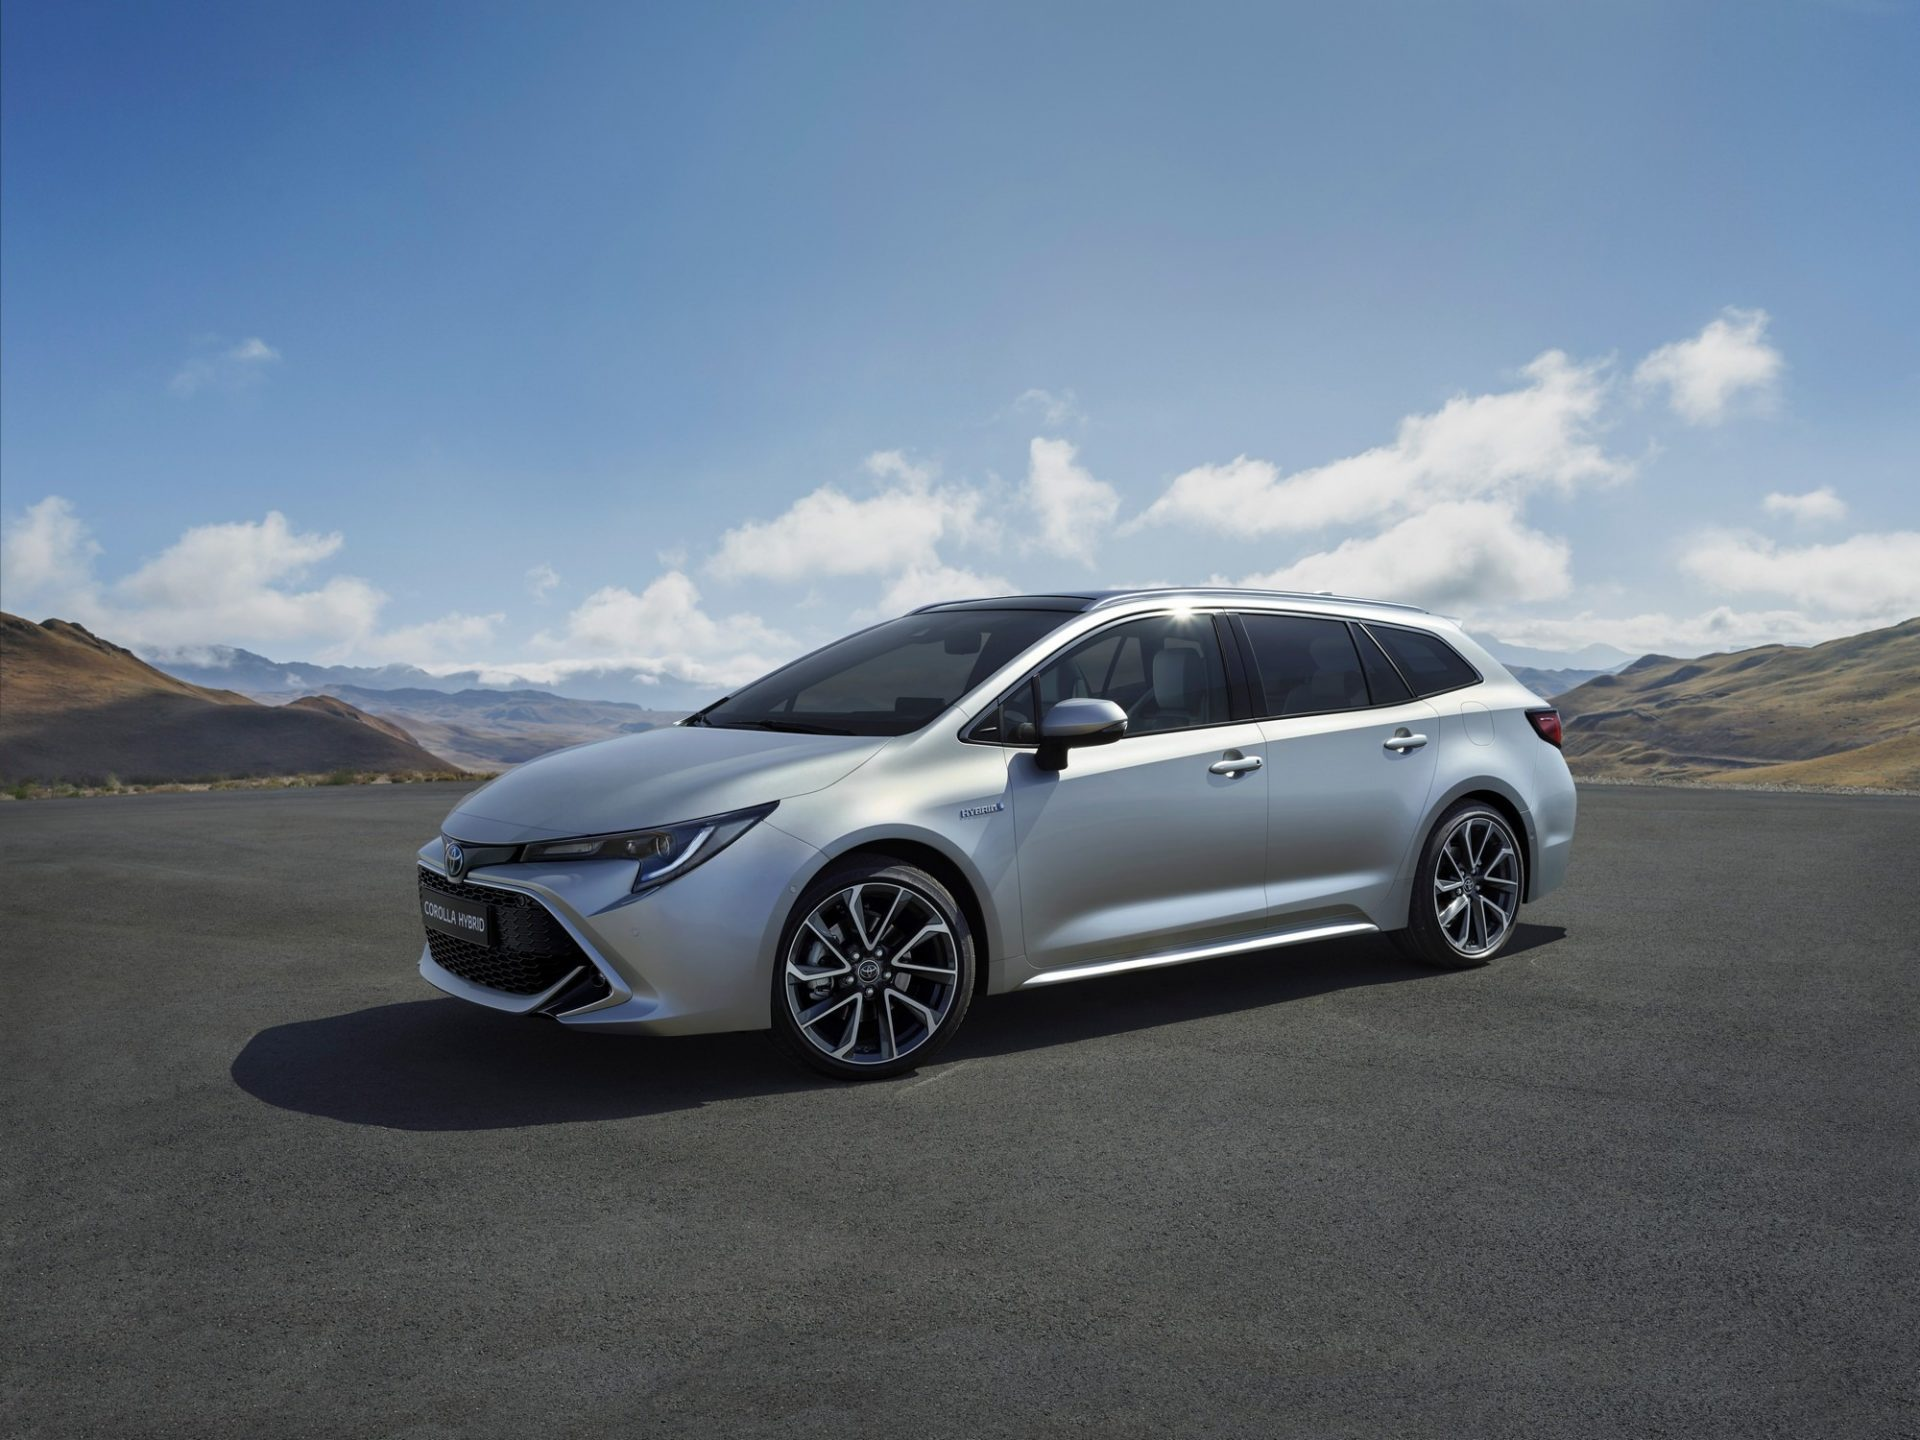 New Toyota Corolla Debuts With Two Flavors at Paris Motor Show 5